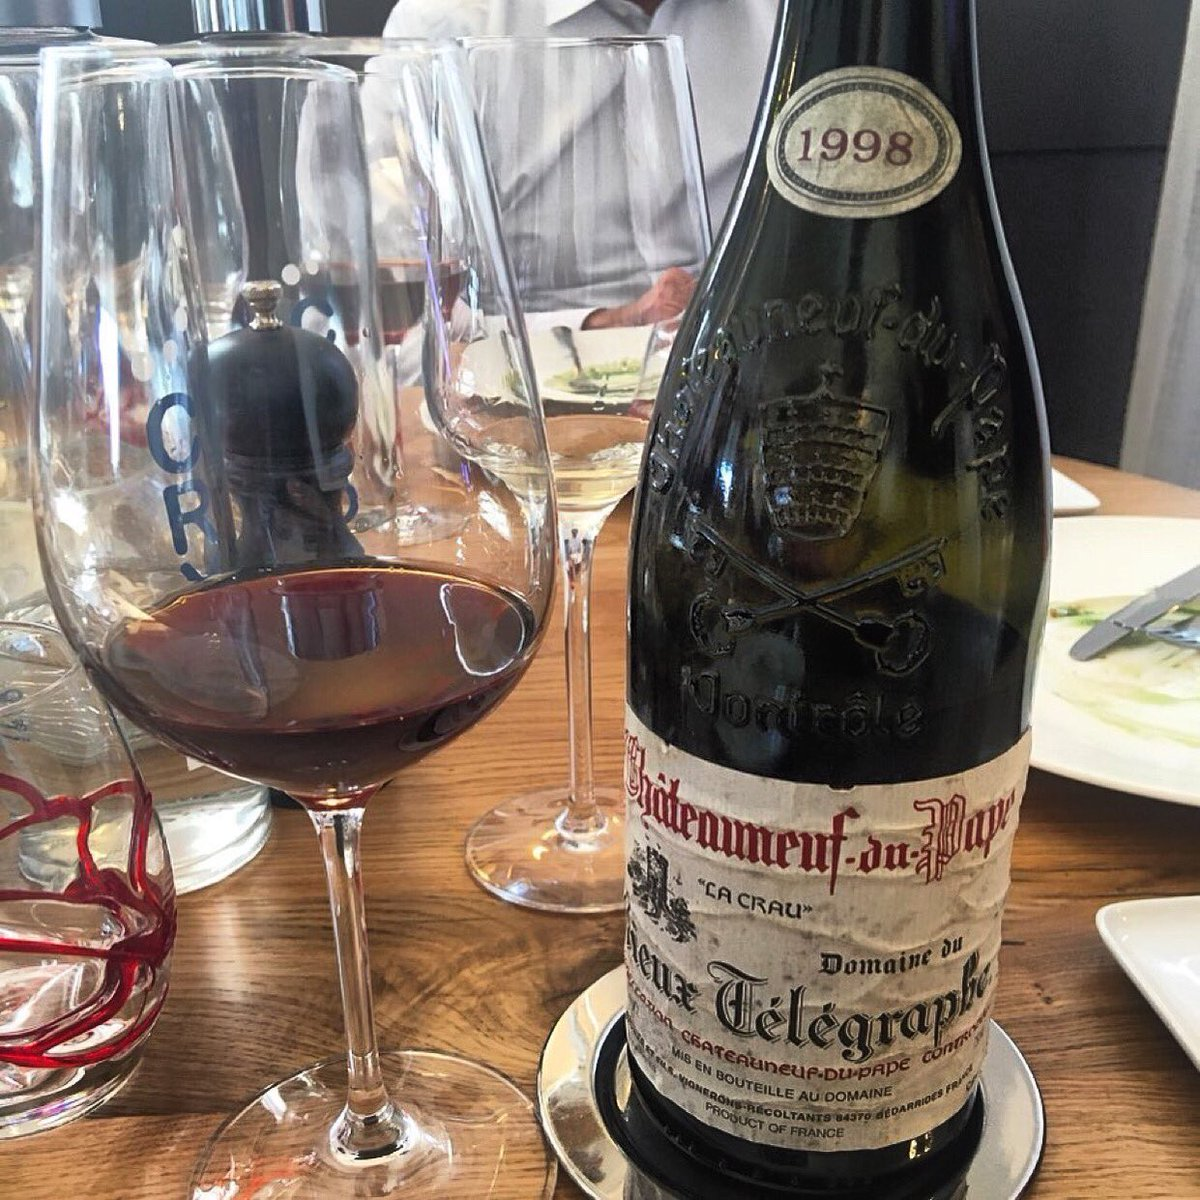 Thank you so much Jeremy and Bert for having given me the chance to taste this amazing wine Châteauneuf du Pape Vieux Télégraphe 1998  during the wine tour. RG: @planet_provence  #enjoy #enjoylife #enjoythemoment #wine #redwine #chateauneufdupape #rhonevalleypic.twitter.com/bzvFxjPedK